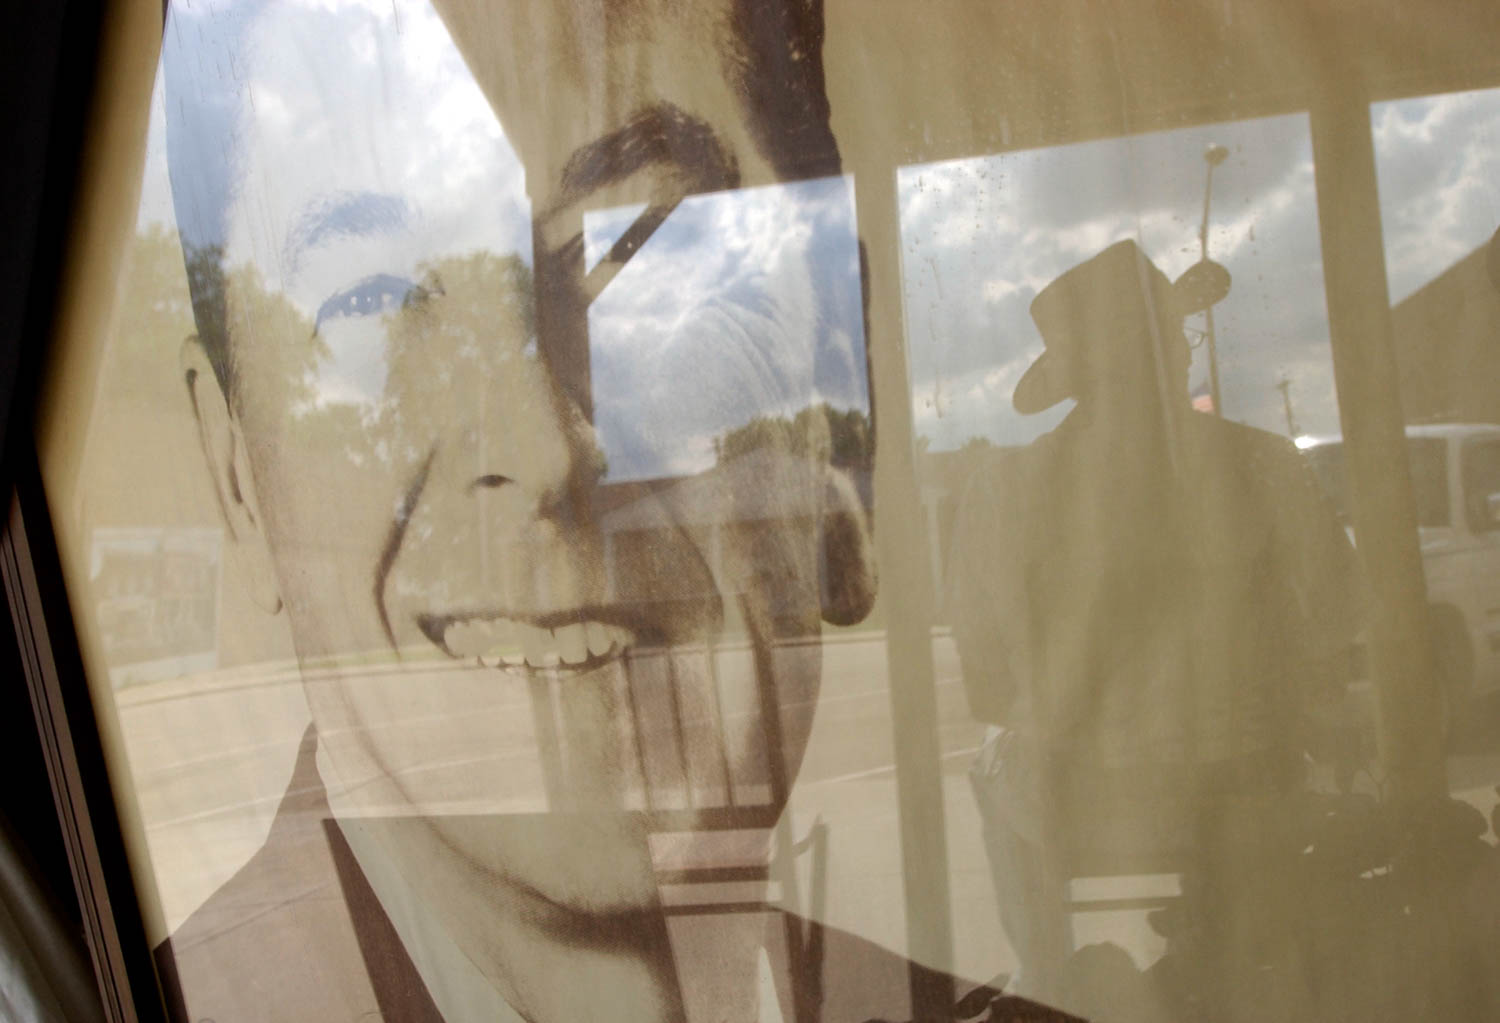 The reflection of Tim McLoughlin of Tampico Ill., casts a silhouette next to a large portrait of former President Ronald Reagan in the window of the Tampico historical society, Sunday afternoon. Reagan was born in Tampico, on Feb. 6, 1911 and died Saturday at the age of 93. (Todd Mizener - Dispatch/Argus)